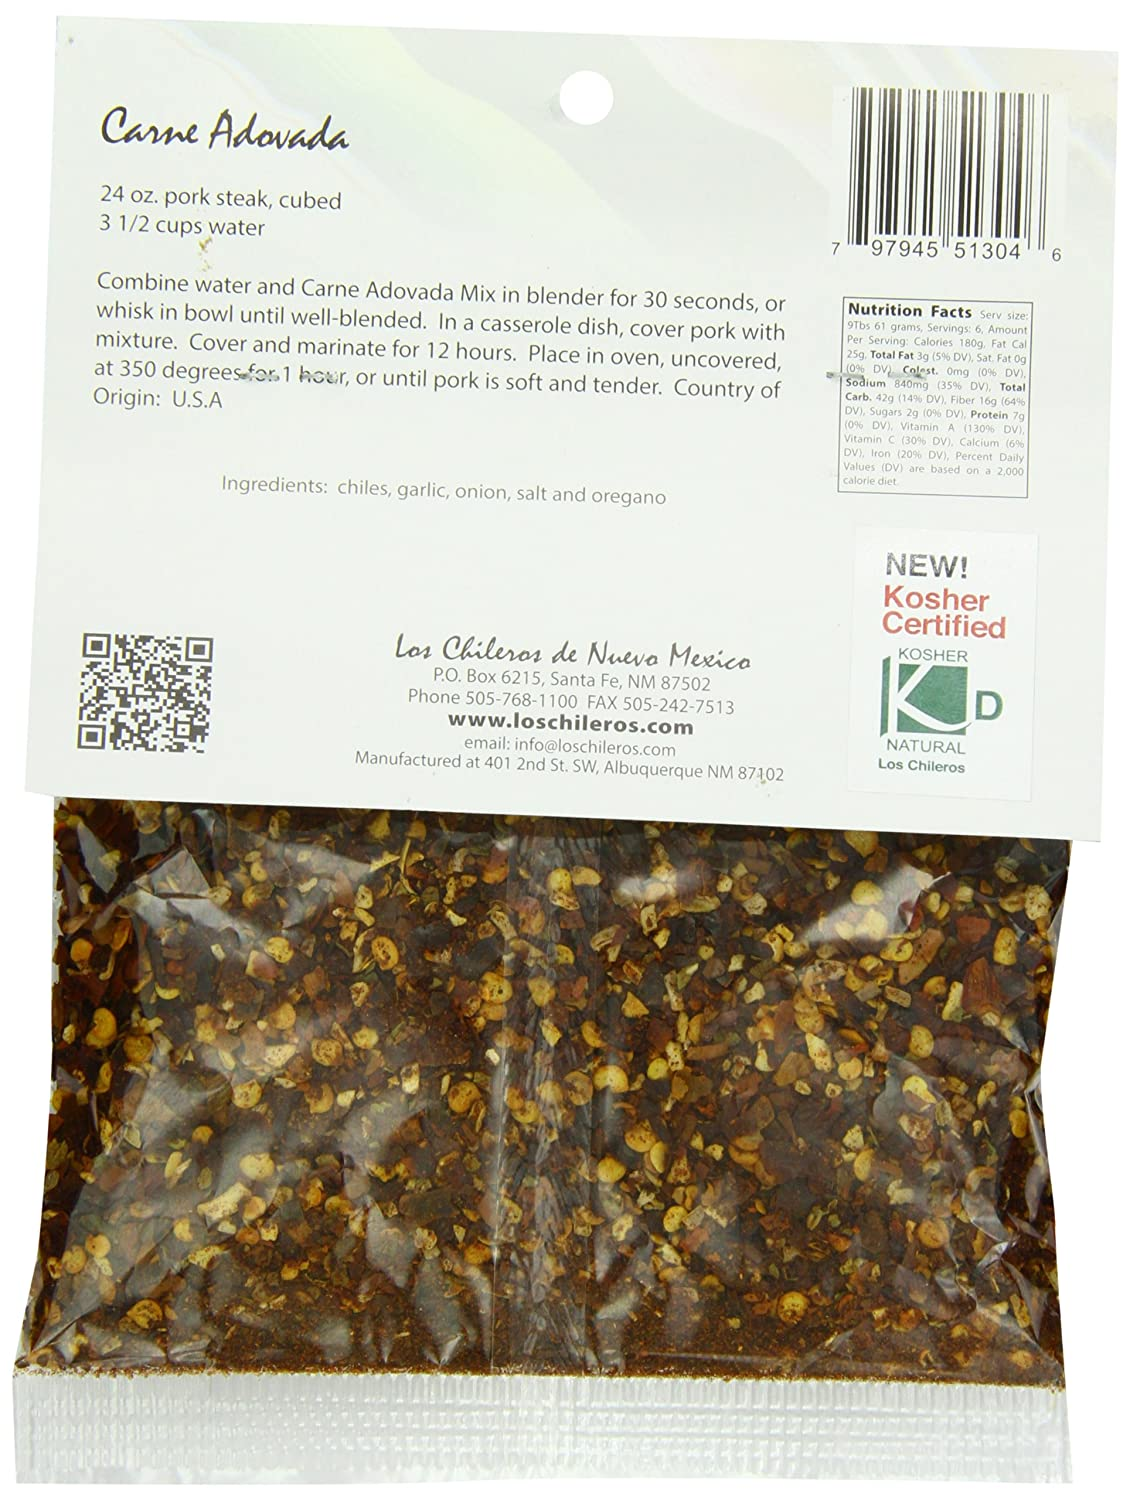 Amazon.com : Los Chileros Carne Adovada Mix, 4 Ounce : Mixed Spices And Seasonings : Grocery & Gourmet Food